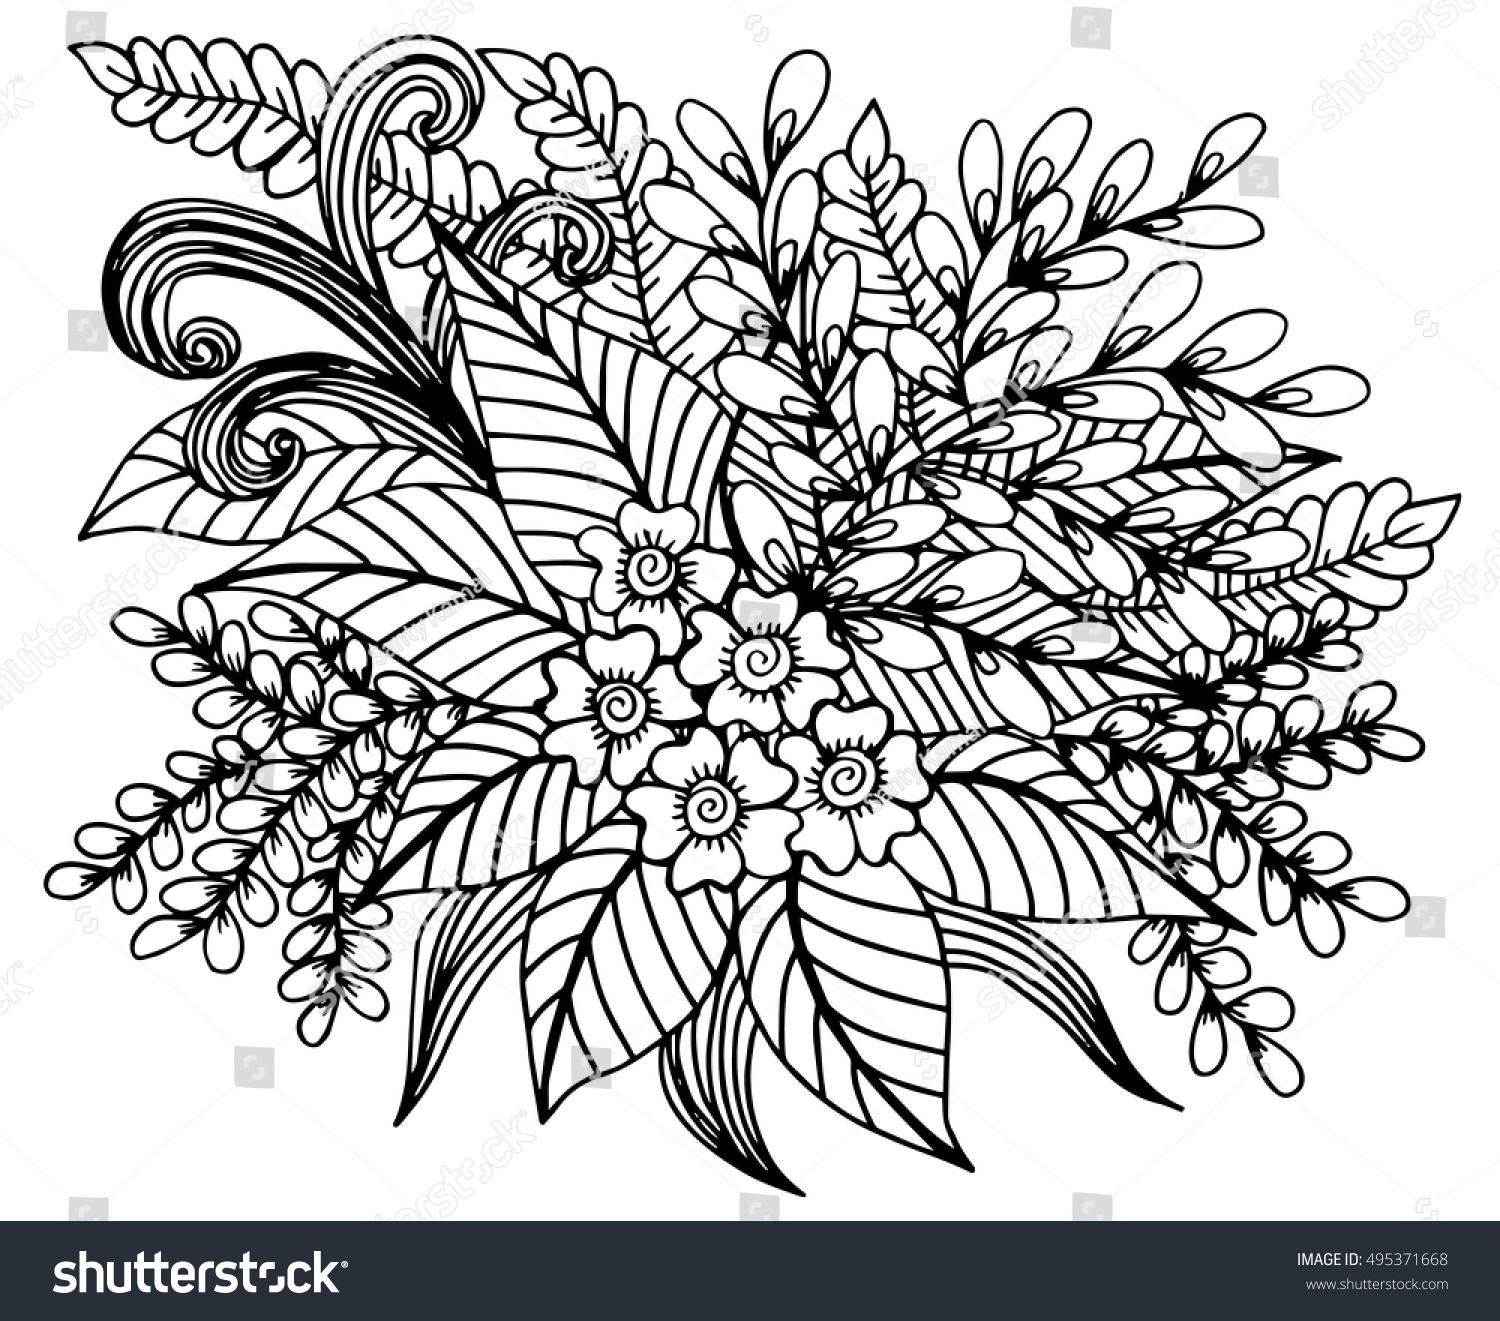 Hand Drawn Floral Doodle Coloring Pages Stock Vector Royalty Free 495371668